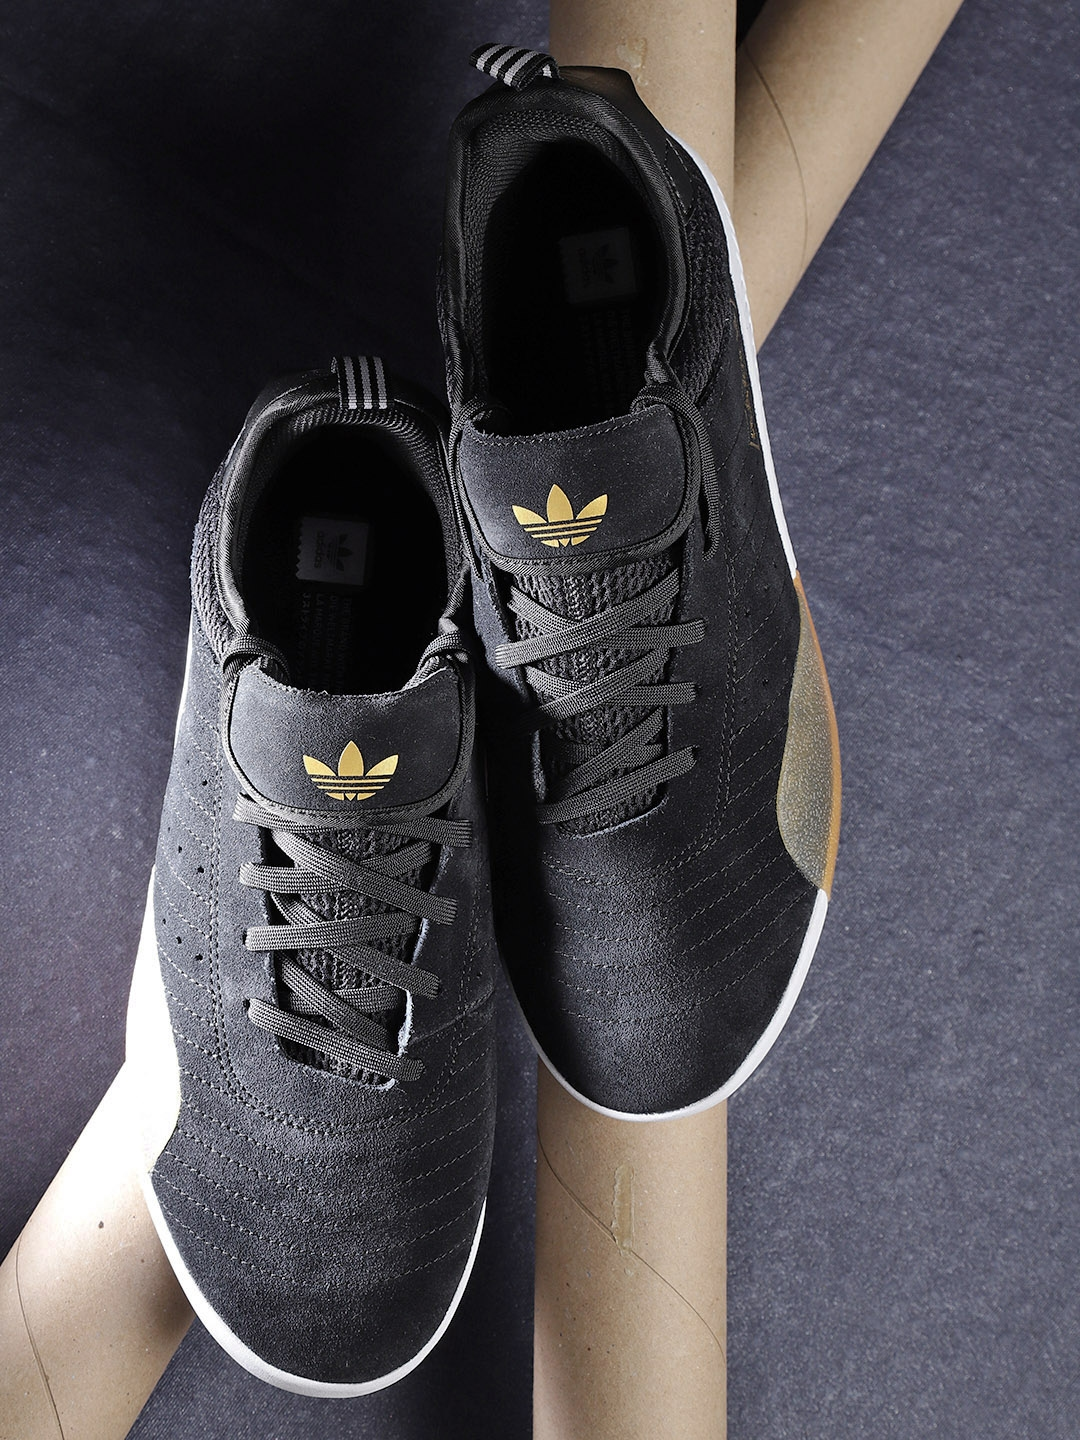 timeless design 0dc87 de368 ADIDAS Originals Men Black 3ST.003 Sneakers